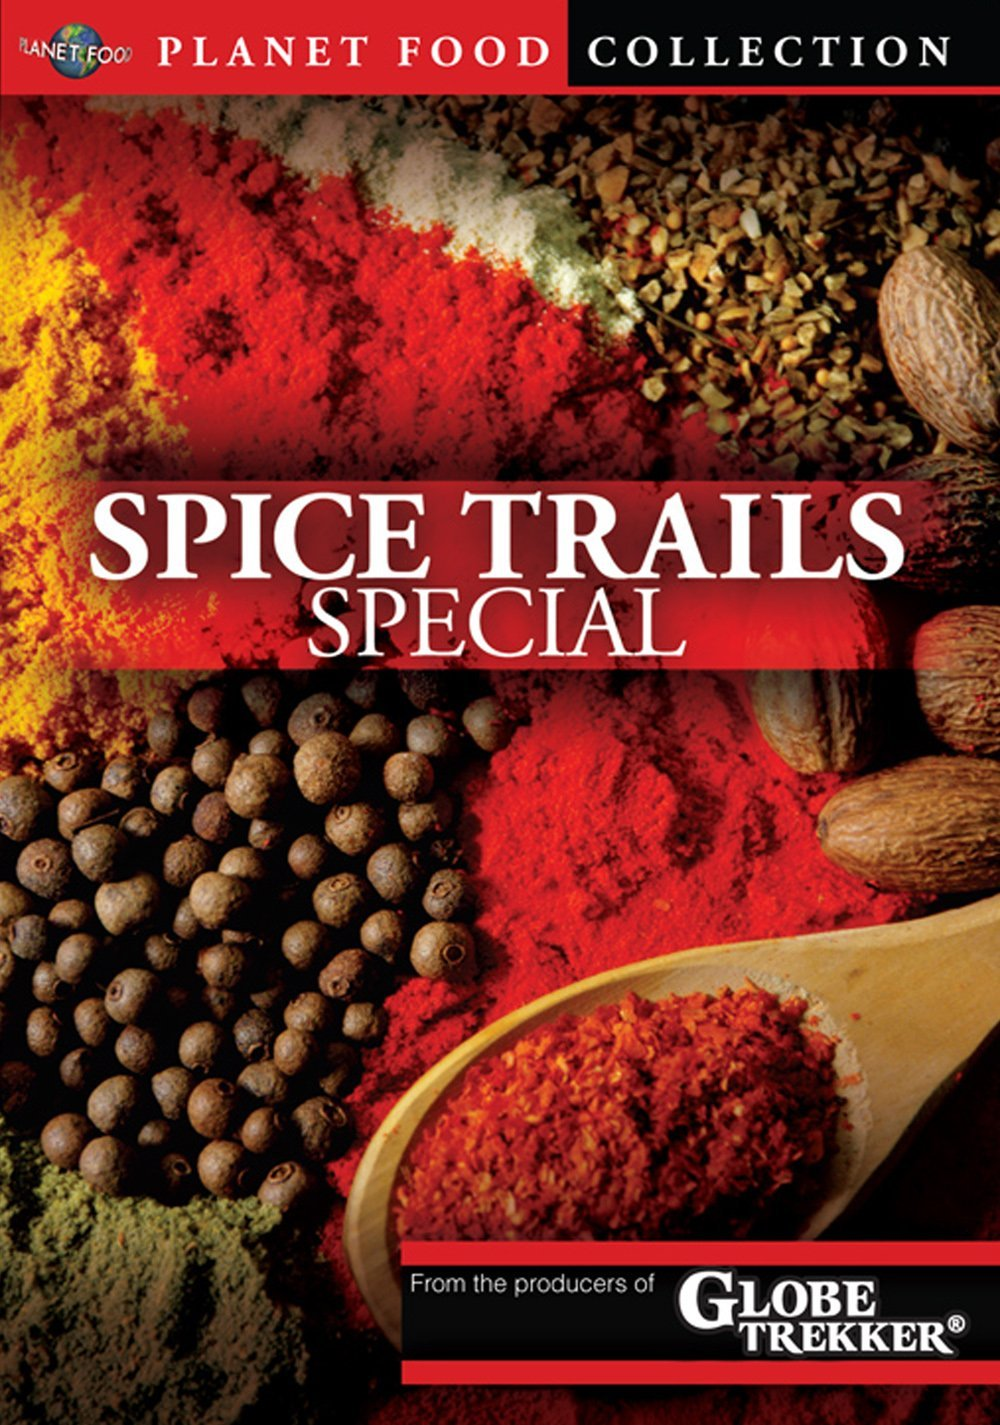 Globe Trekker: Planet Food, Spice Trails